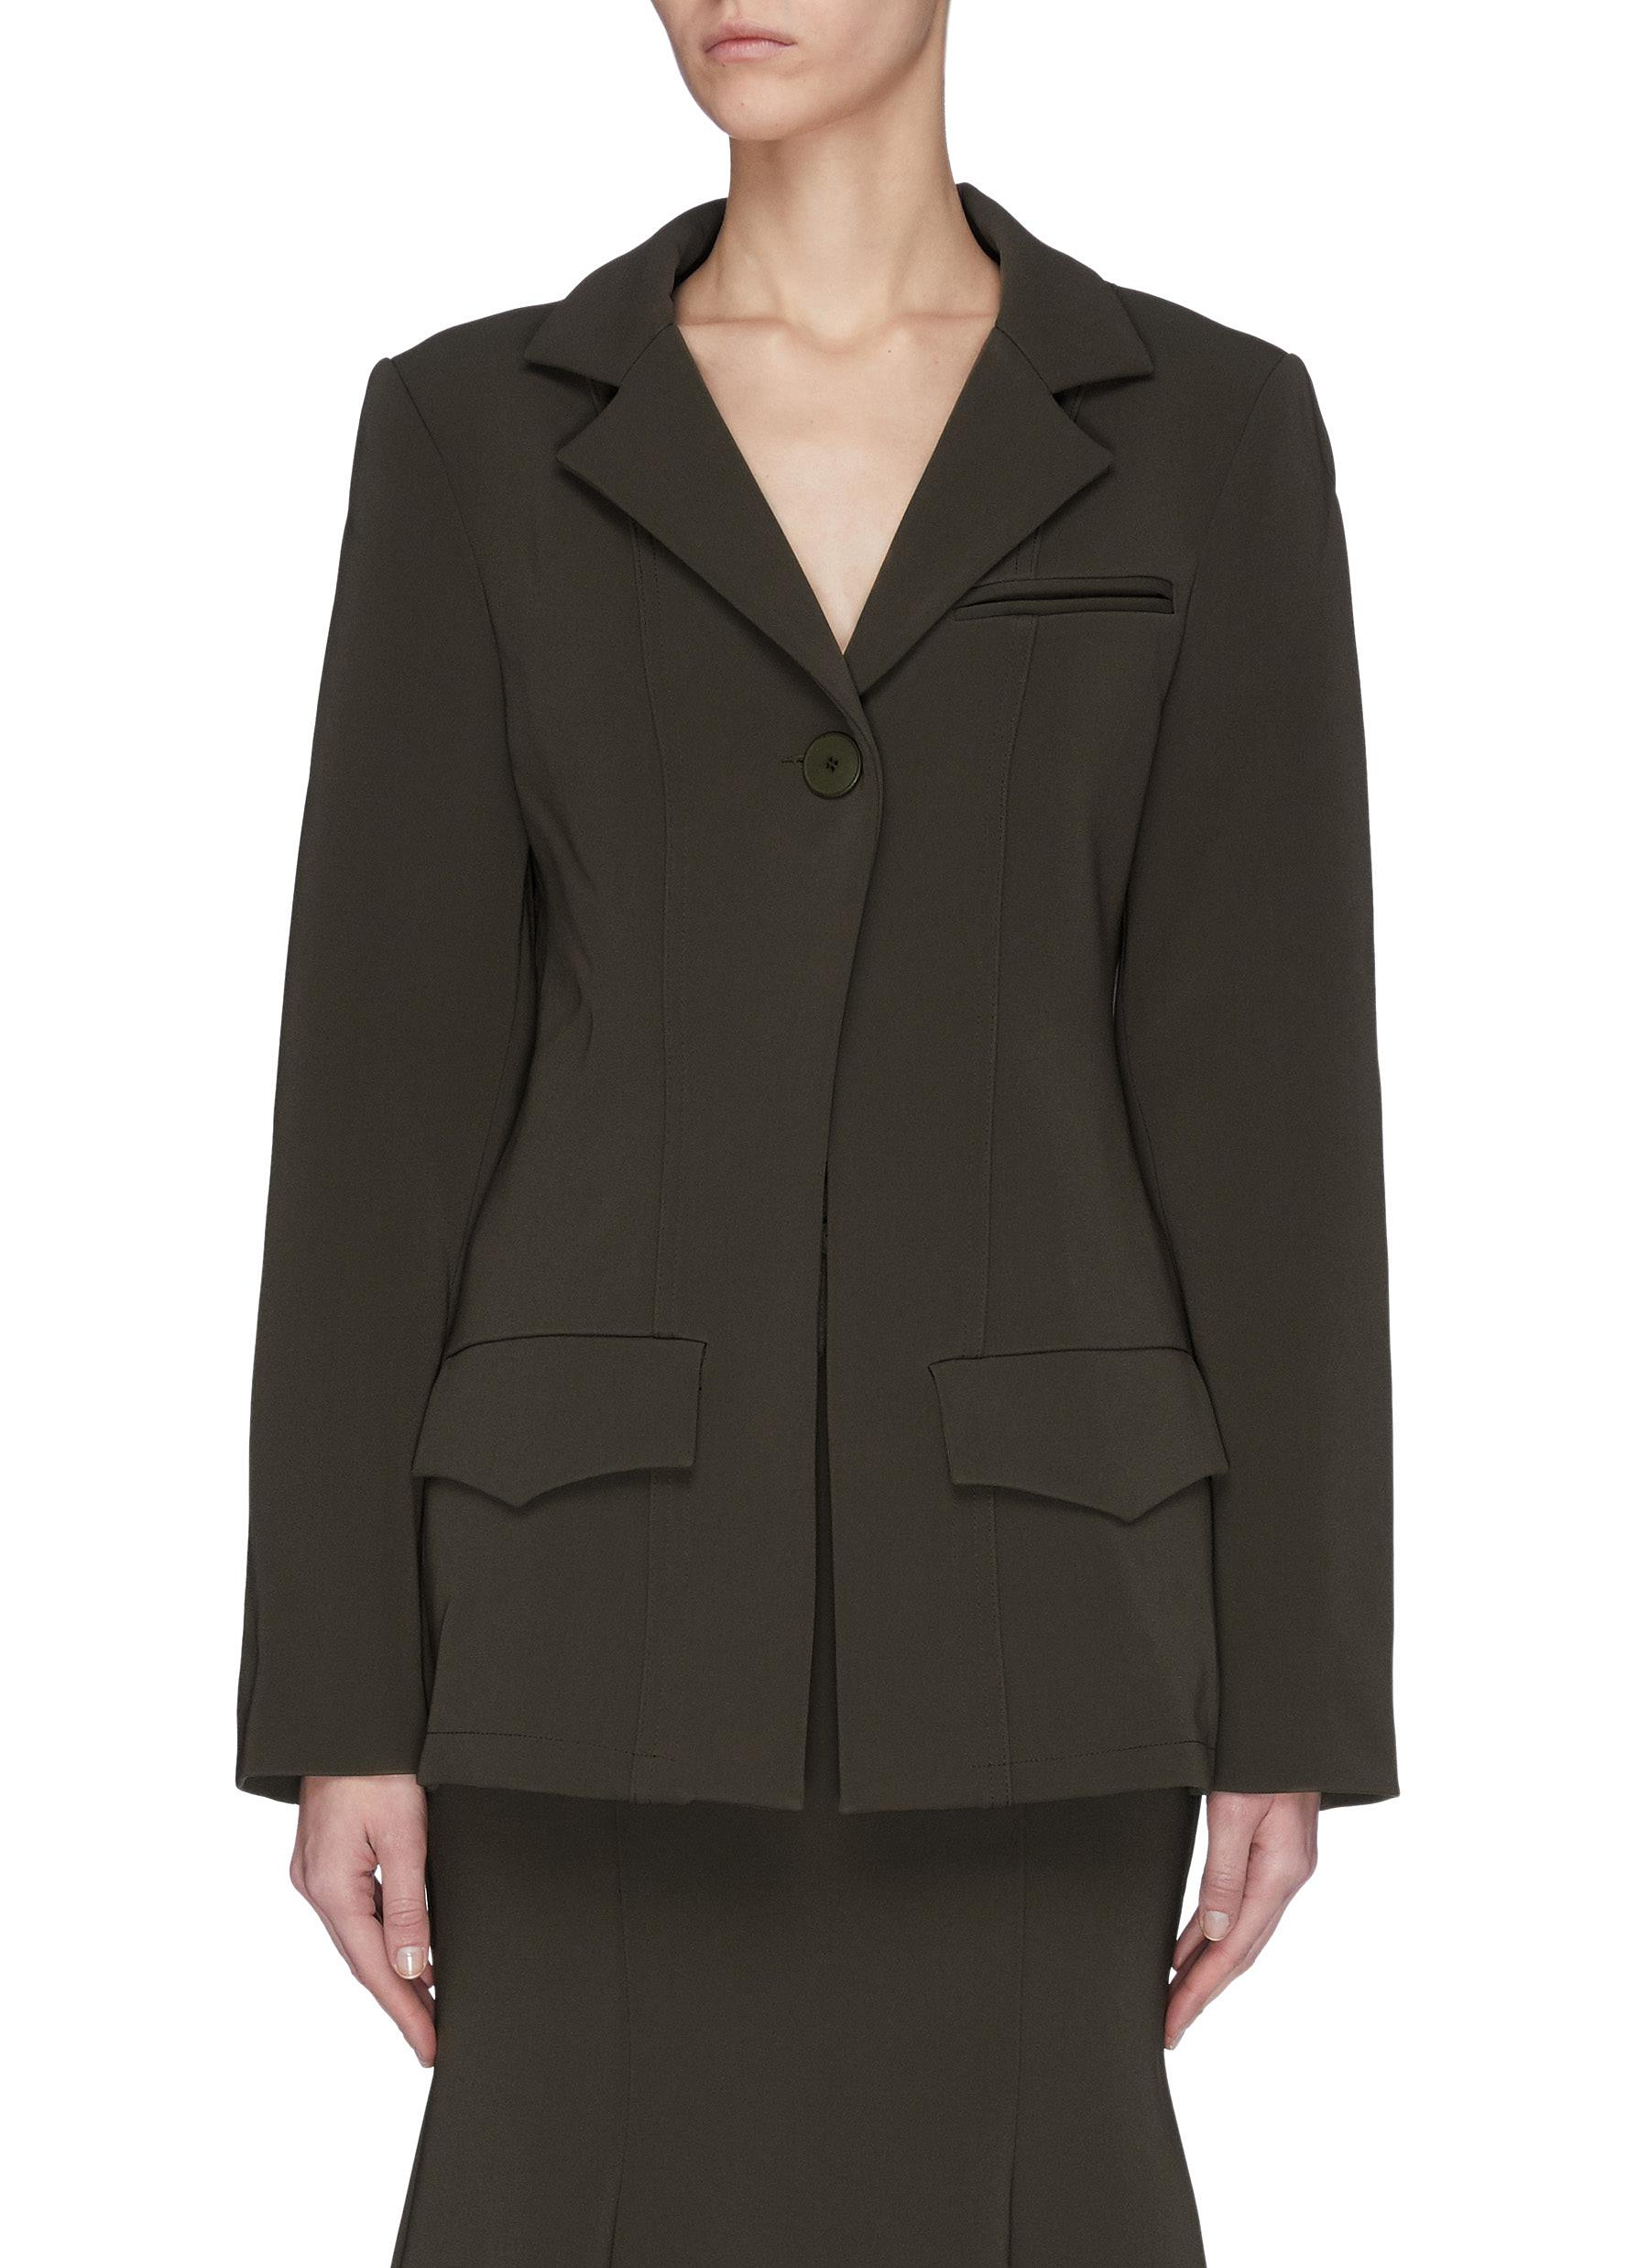 Buy Maggie Marilyn Blazers 'Invested in Me' padded shoulder blazer